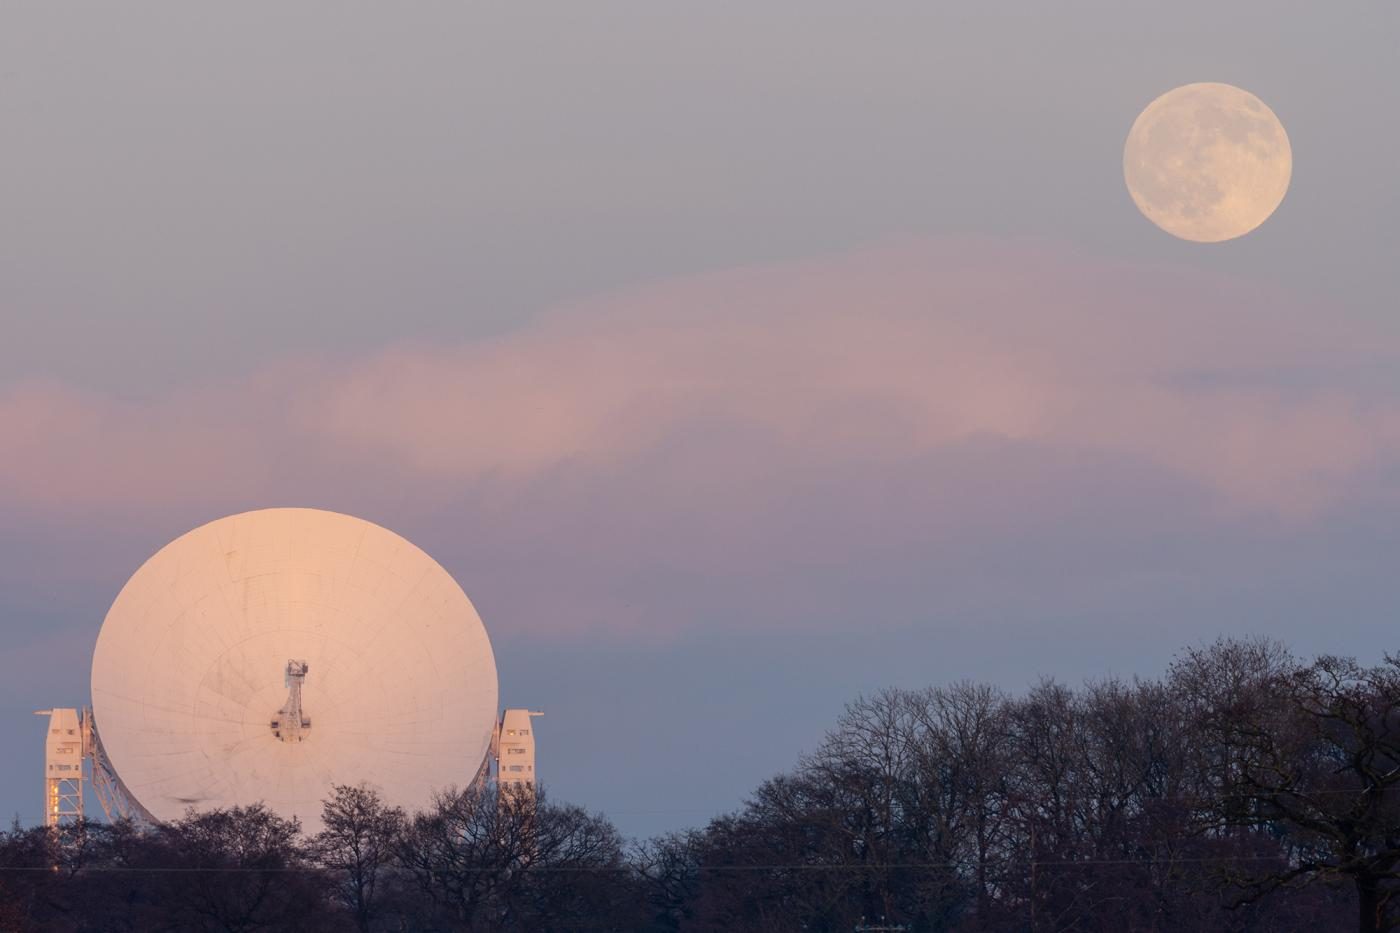 An image showing 'Moonrise over Jodrell Bank'